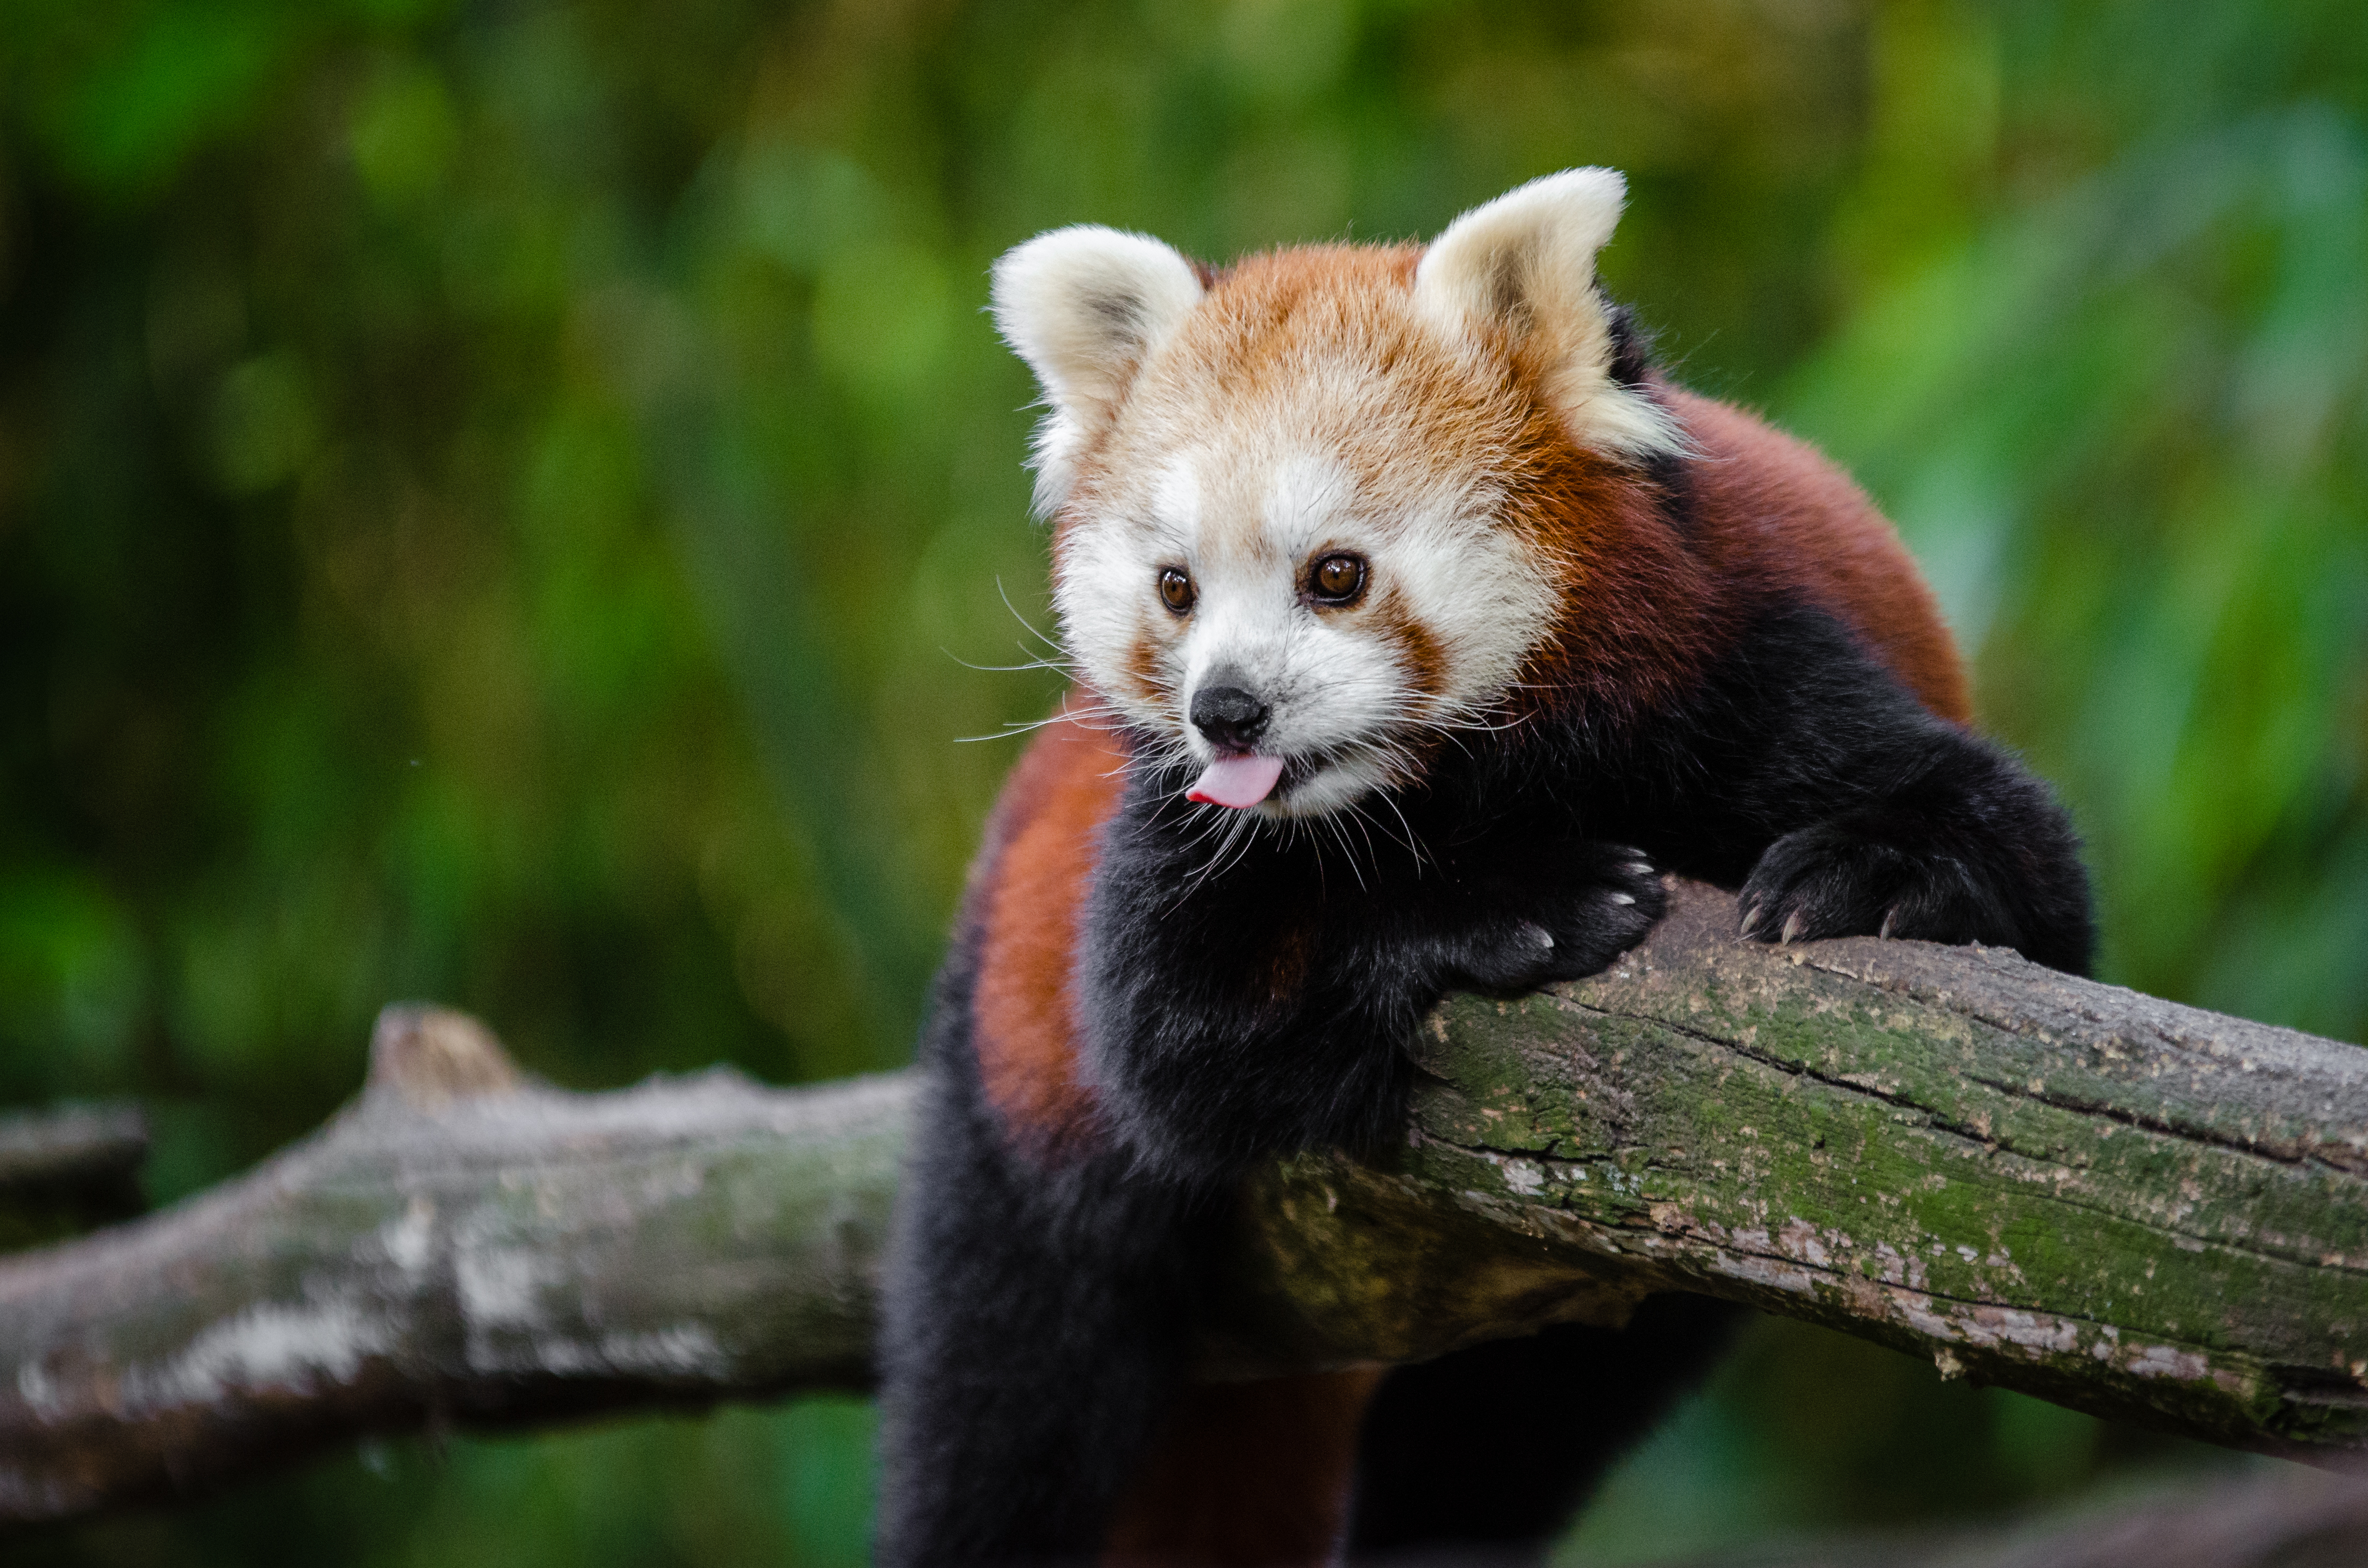 133911 download wallpaper Animals, Red Panda, Panda, Language, Tongue, Cool screensavers and pictures for free